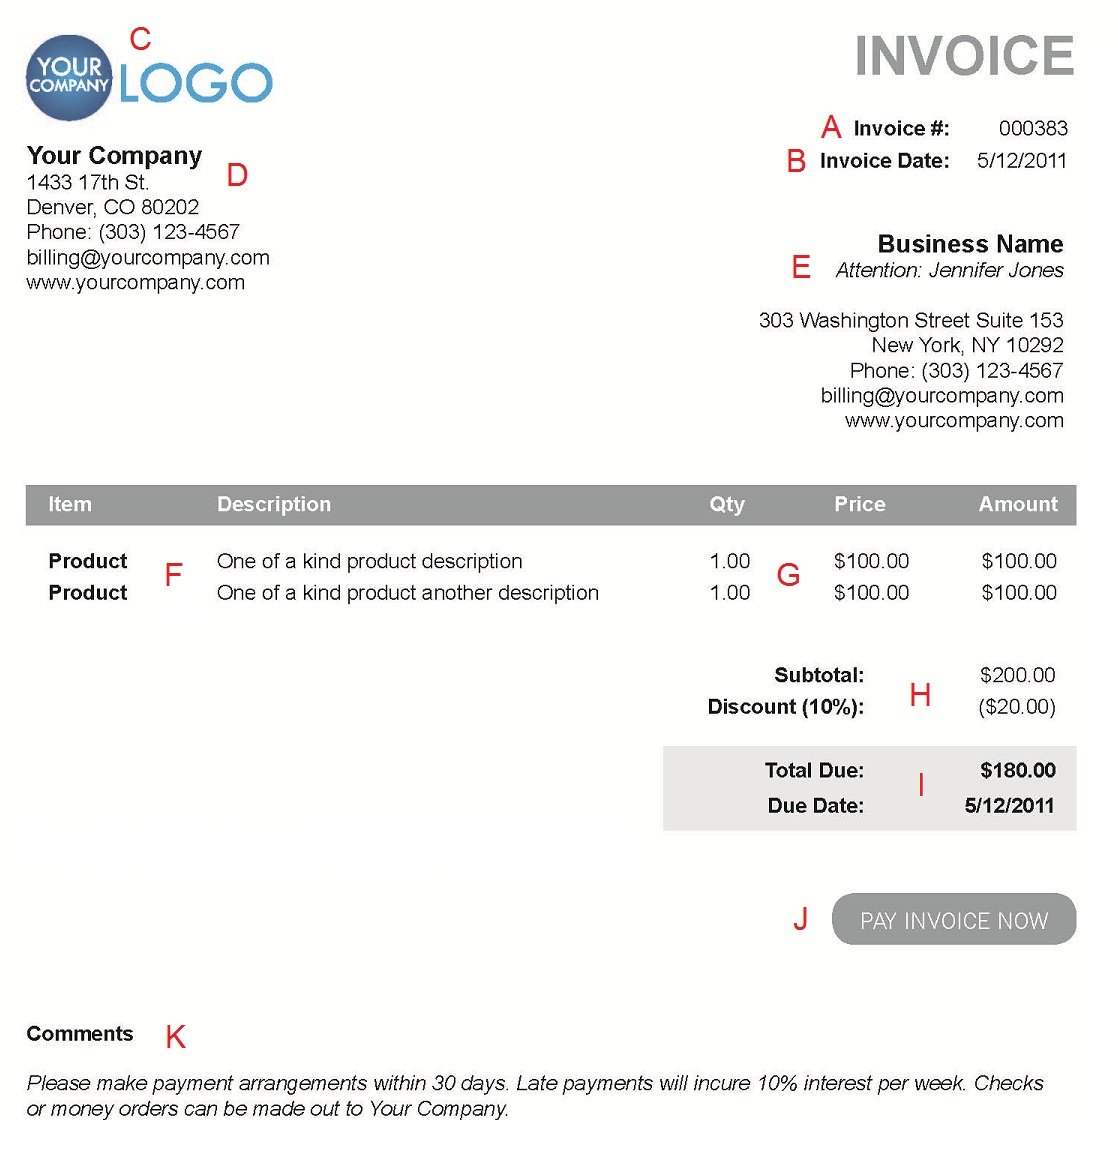 Usdgus  Seductive The  Different Sections Of An Electronic Payment Invoice With Remarkable A  With Delectable Microsoft Word Invoice Template Free Download Also Sending An Invoice On Paypal In Addition Sample Legal Invoice And Work Order Invoice Template As Well As Subcontractor Invoice Additionally Invoice For Mac From Paysimplecom With Usdgus  Remarkable The  Different Sections Of An Electronic Payment Invoice With Delectable A  And Seductive Microsoft Word Invoice Template Free Download Also Sending An Invoice On Paypal In Addition Sample Legal Invoice From Paysimplecom